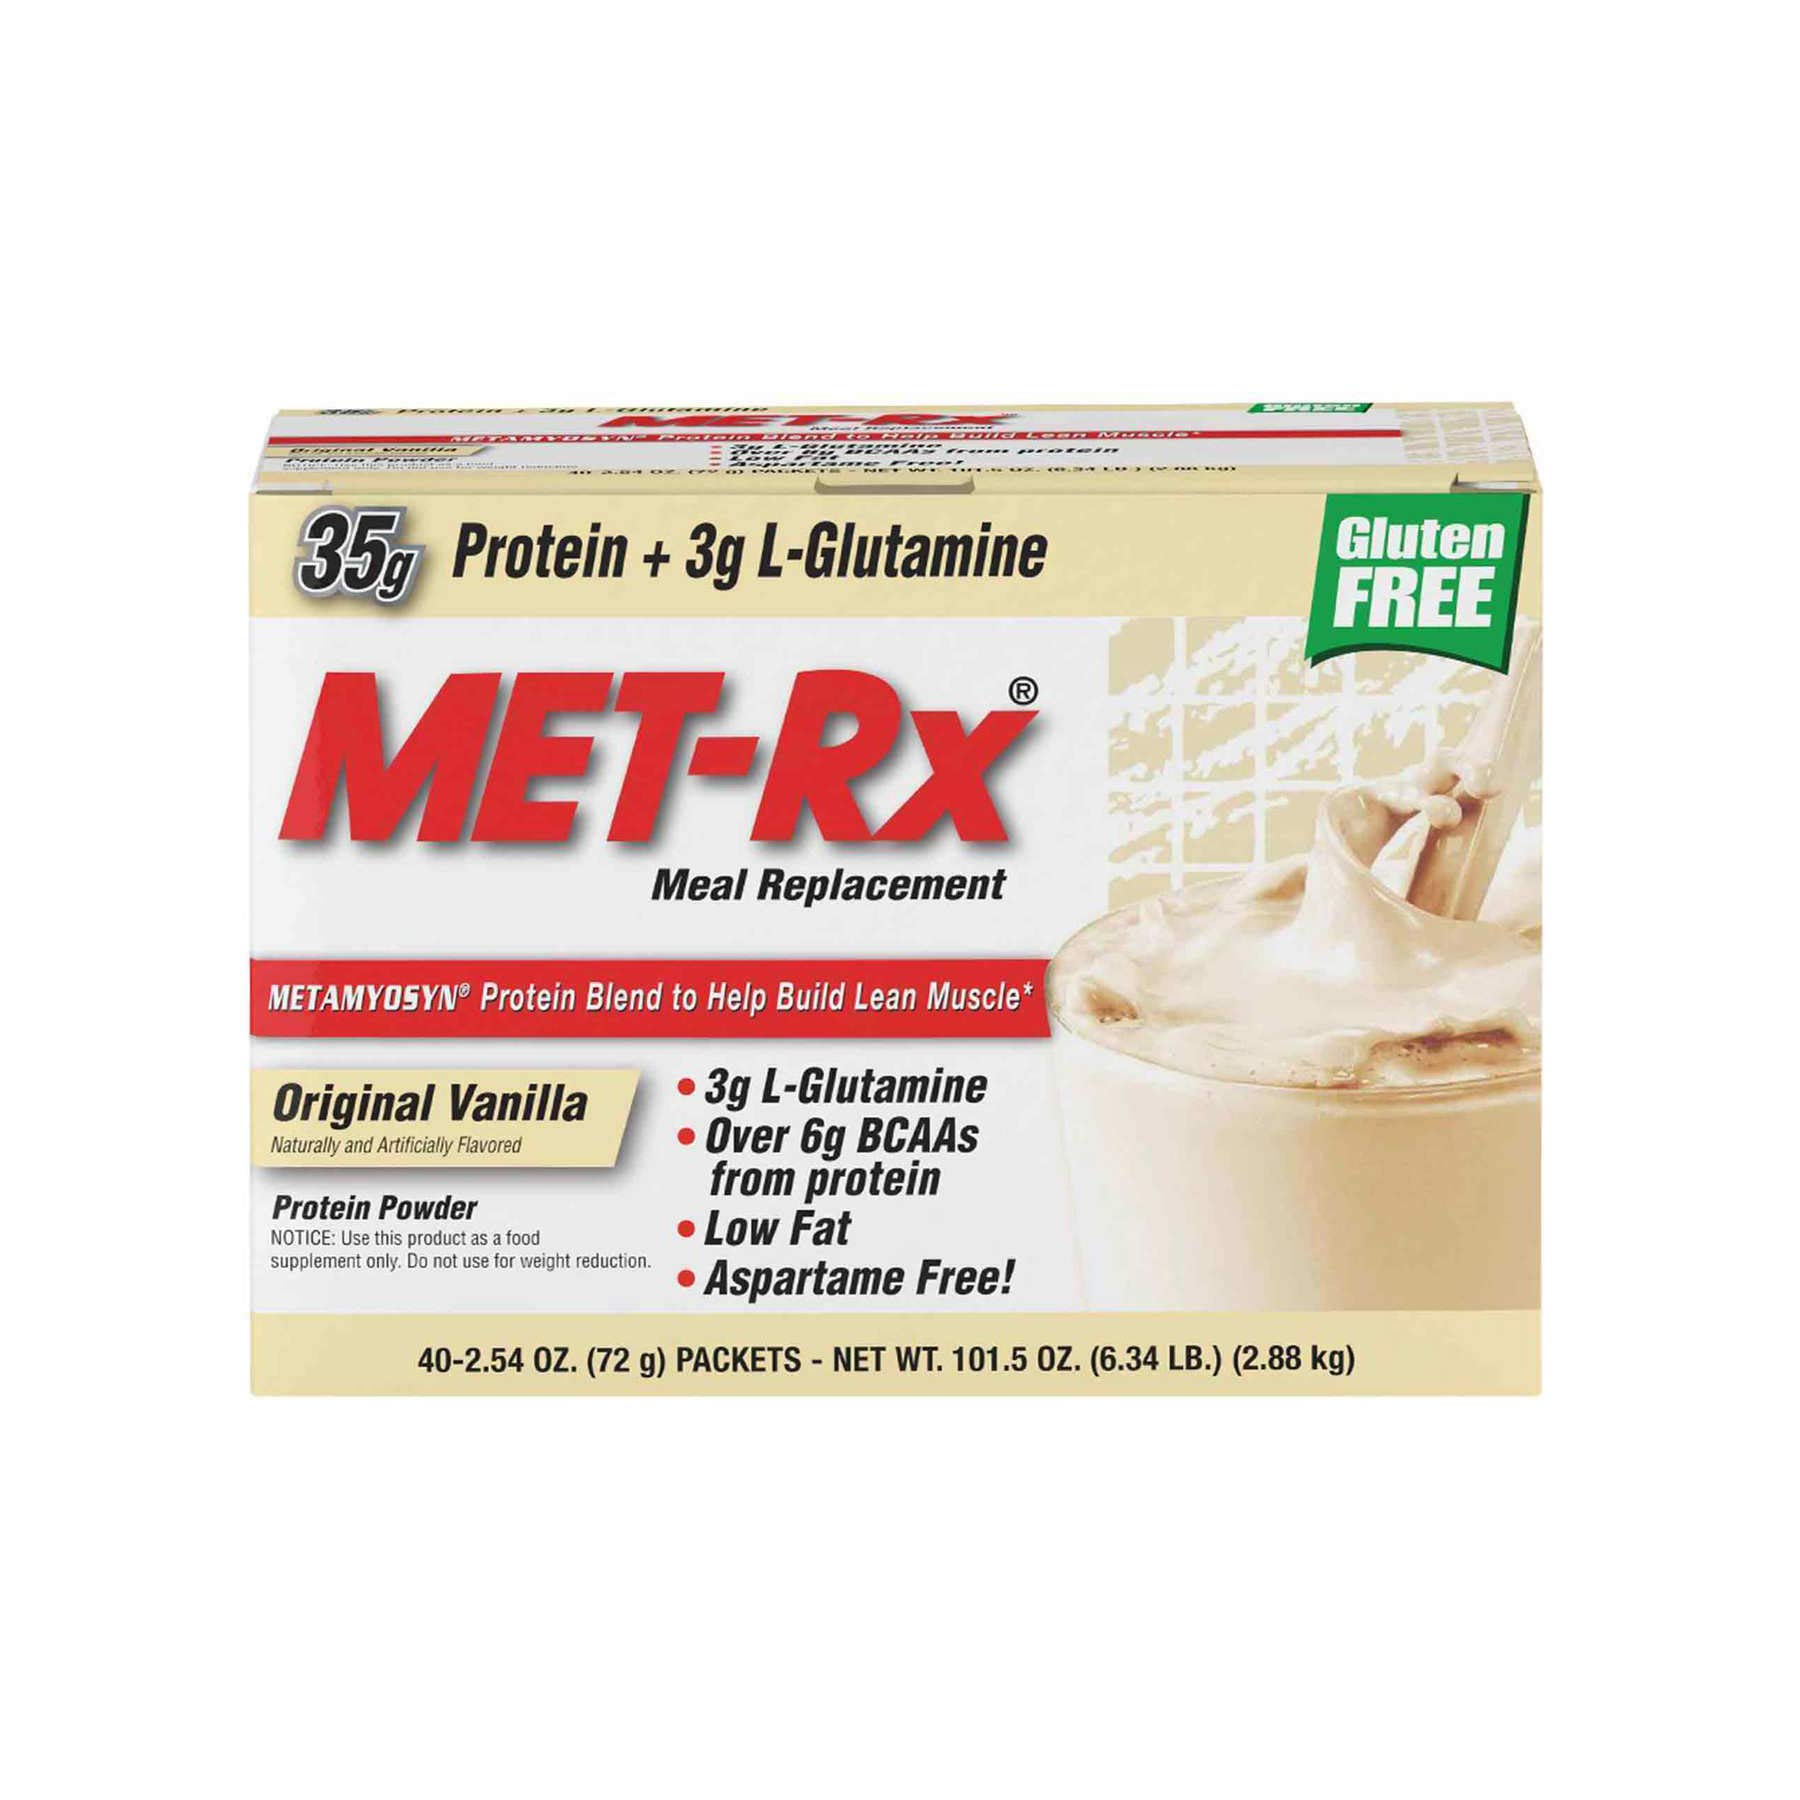 MET-Rx Original Whey Protein Powder, Great for Meal Replacement Shakes, Low Carb, Gluten Free, Original Vanilla, 2.54 oz. Packets, 40 Count by MET-Rx